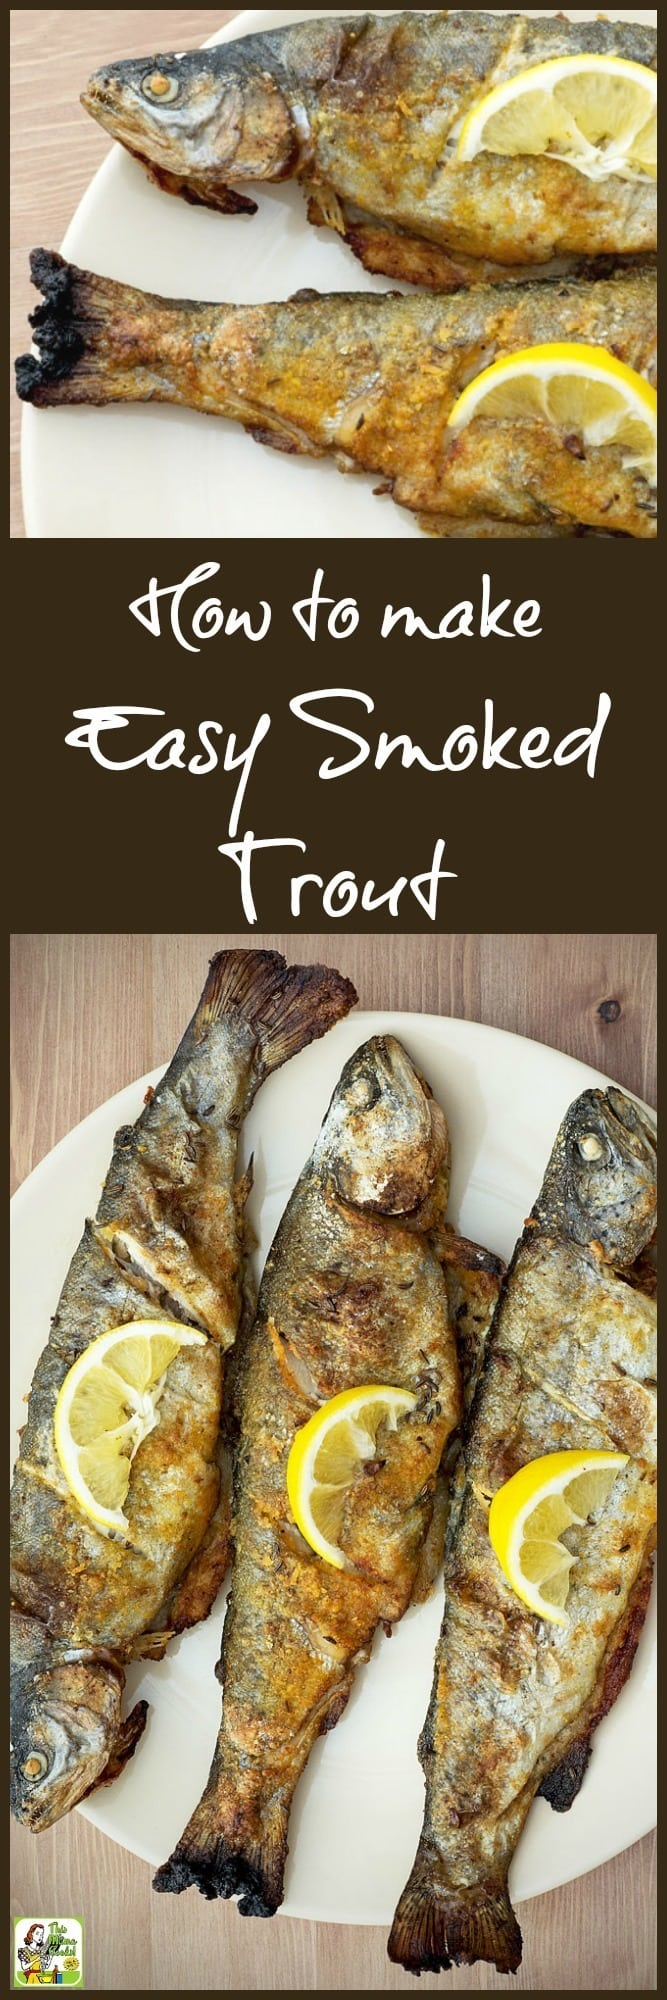 Got fish? Learn how to make smoked trout for dinner or your next fish fry party! It's easier than you think if you have an electric smoker or a grill that you can smoke in. Just make a simple marinade from salad dressing. Once you've tasted smoked trout, you'll never want to cook fish another way! #trout #fish #fishfry #electricsmoker #smoker #grilling #smoking #smokedfish #marinades #fishmarinades #smokedtrout